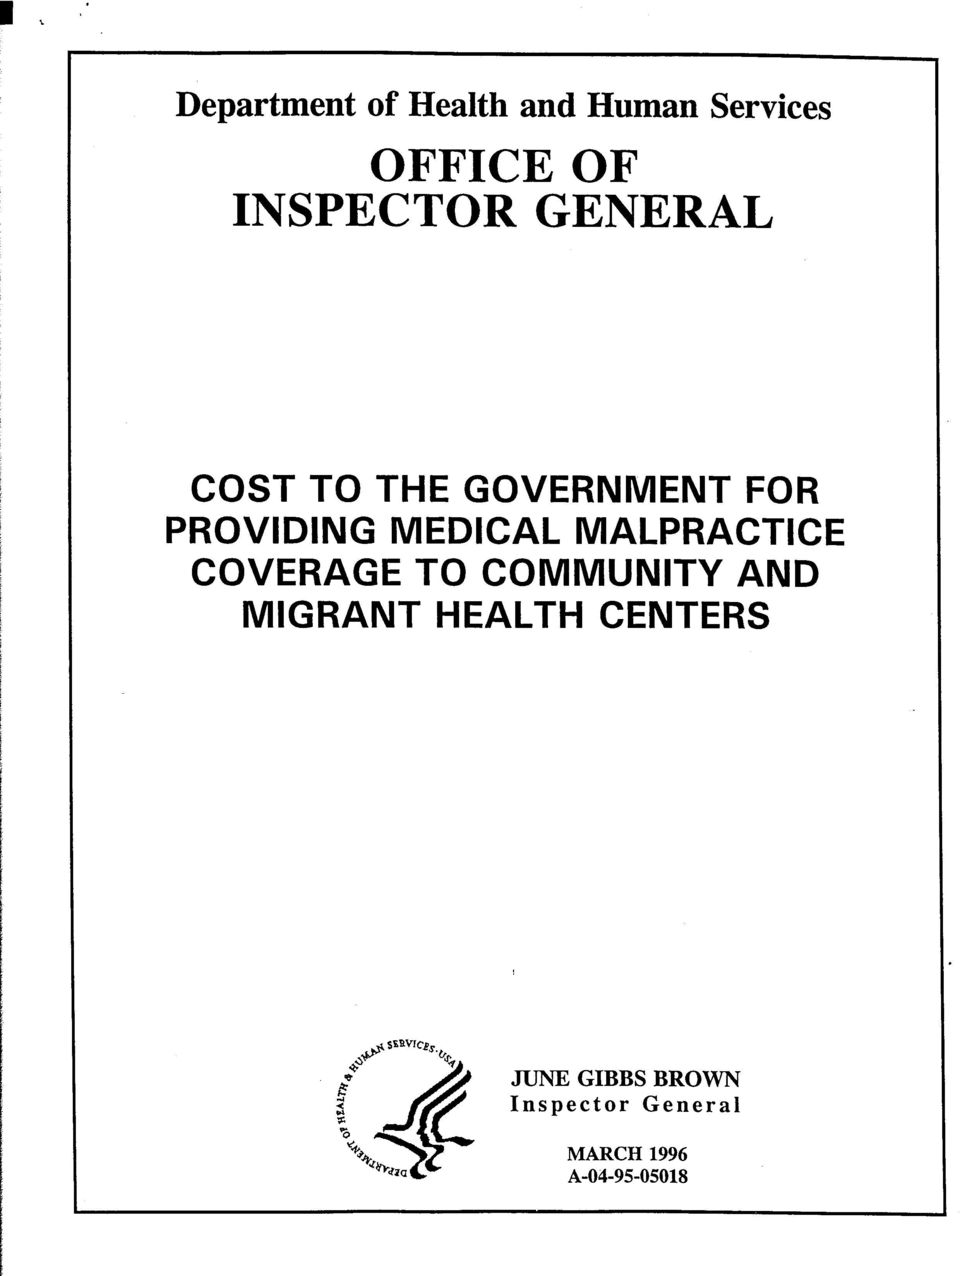 COVERAGE TO COMMUNITY AND MIGRANT HEALTH CENTERS se~wcl~.&.